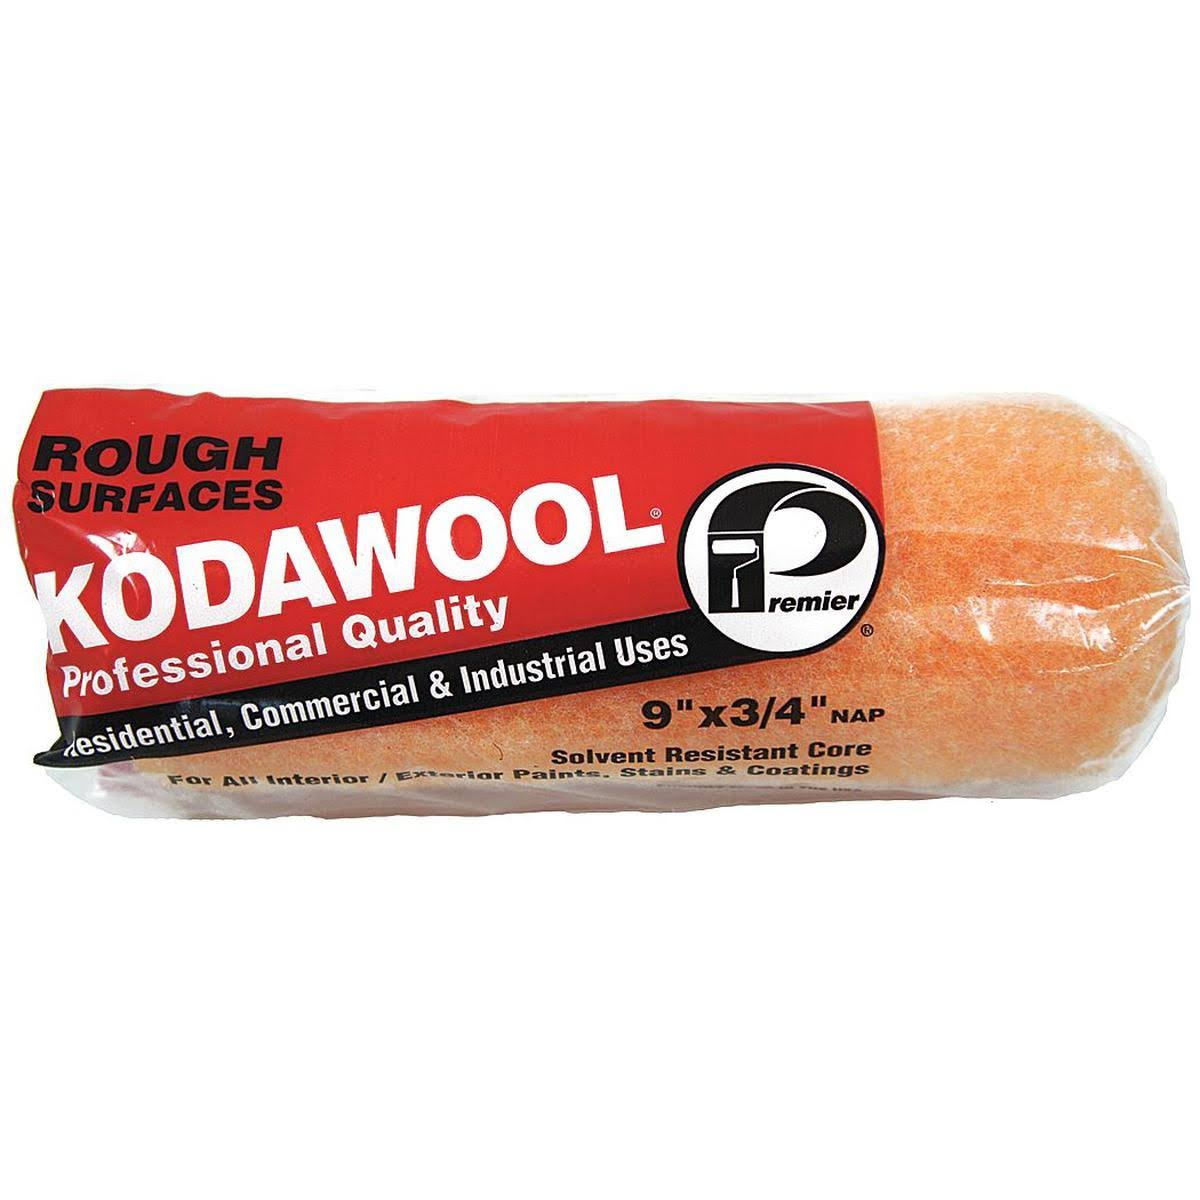 "Kodawool High Density Synthetic Blend Roller Cover - 9""x3/4"", 25pk"